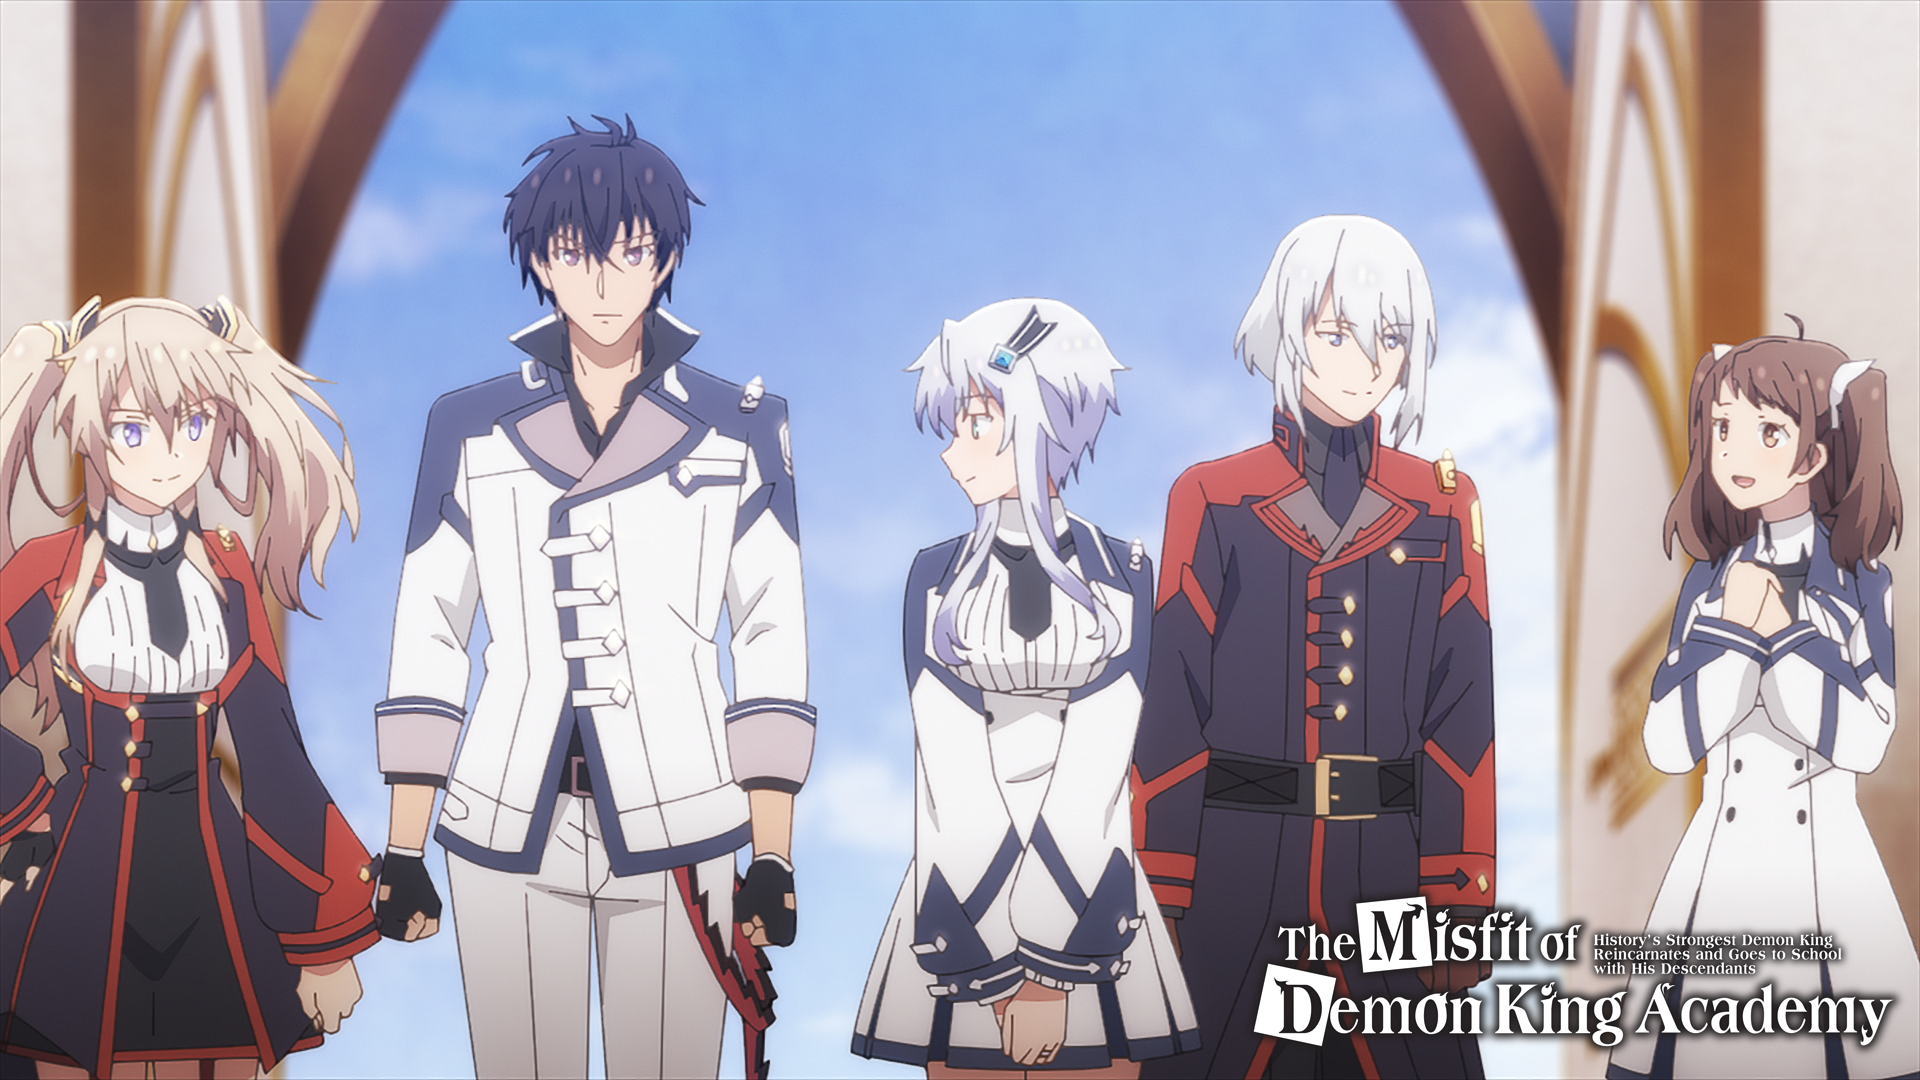 Morgen ab 17:00 im Clubhouse: The Misfit of Demon King Academy – ID: INVADED – I'm Standing on a Million Lives